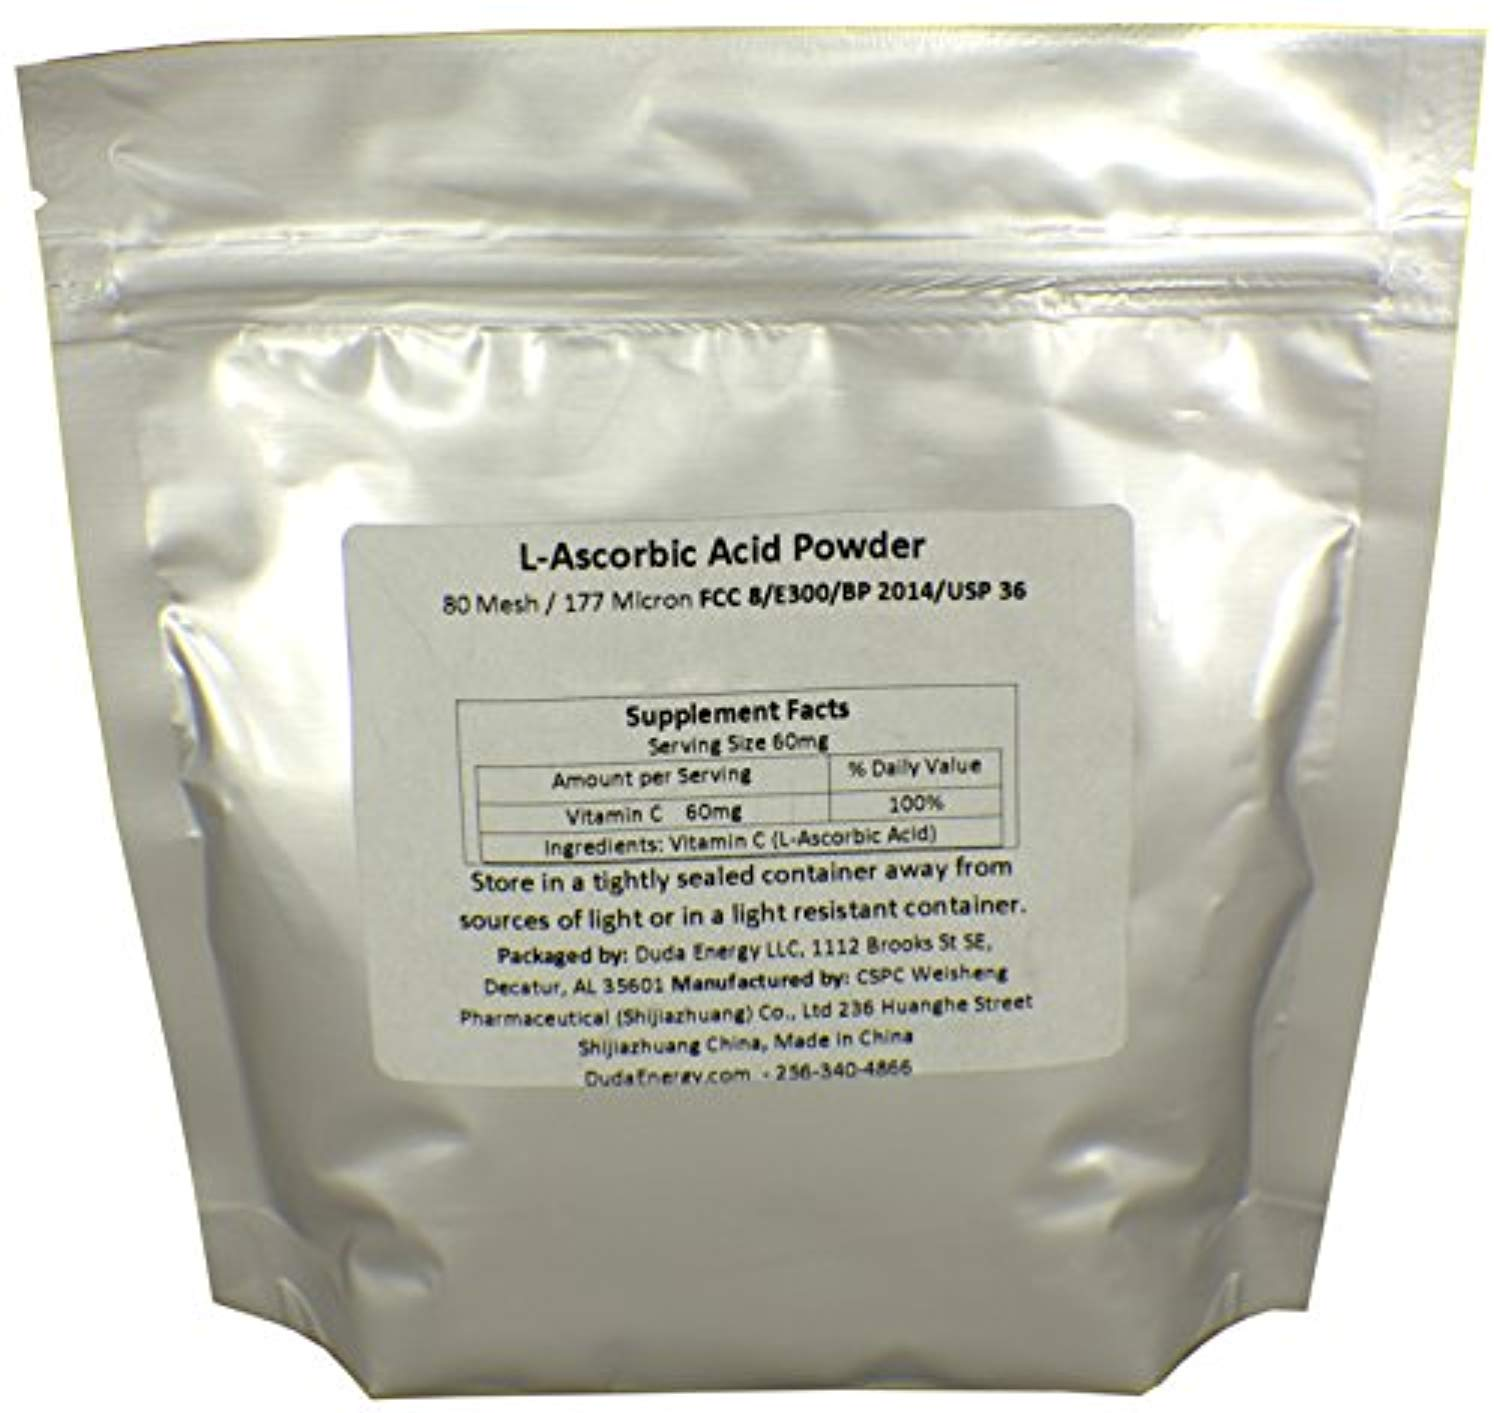 Bag of L-Ascorbic Acid Powder 99+% USP36/BP2012 Naturally Fermented Pure White Crystals Form of Vitamin C, 1 lb. image